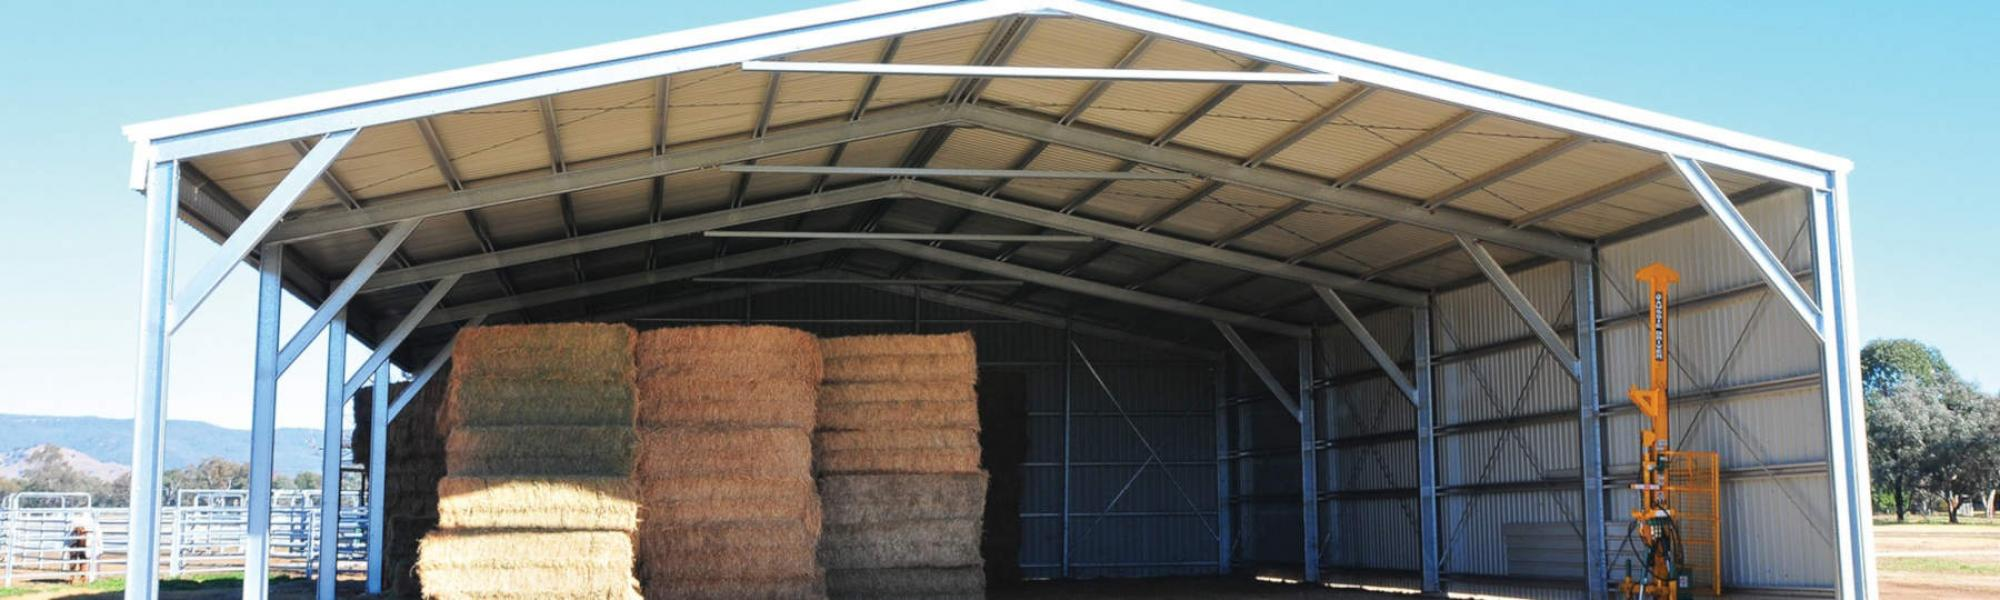 Farm Sheds to Protect Your Hay, Machinery, Equipment & Livestock